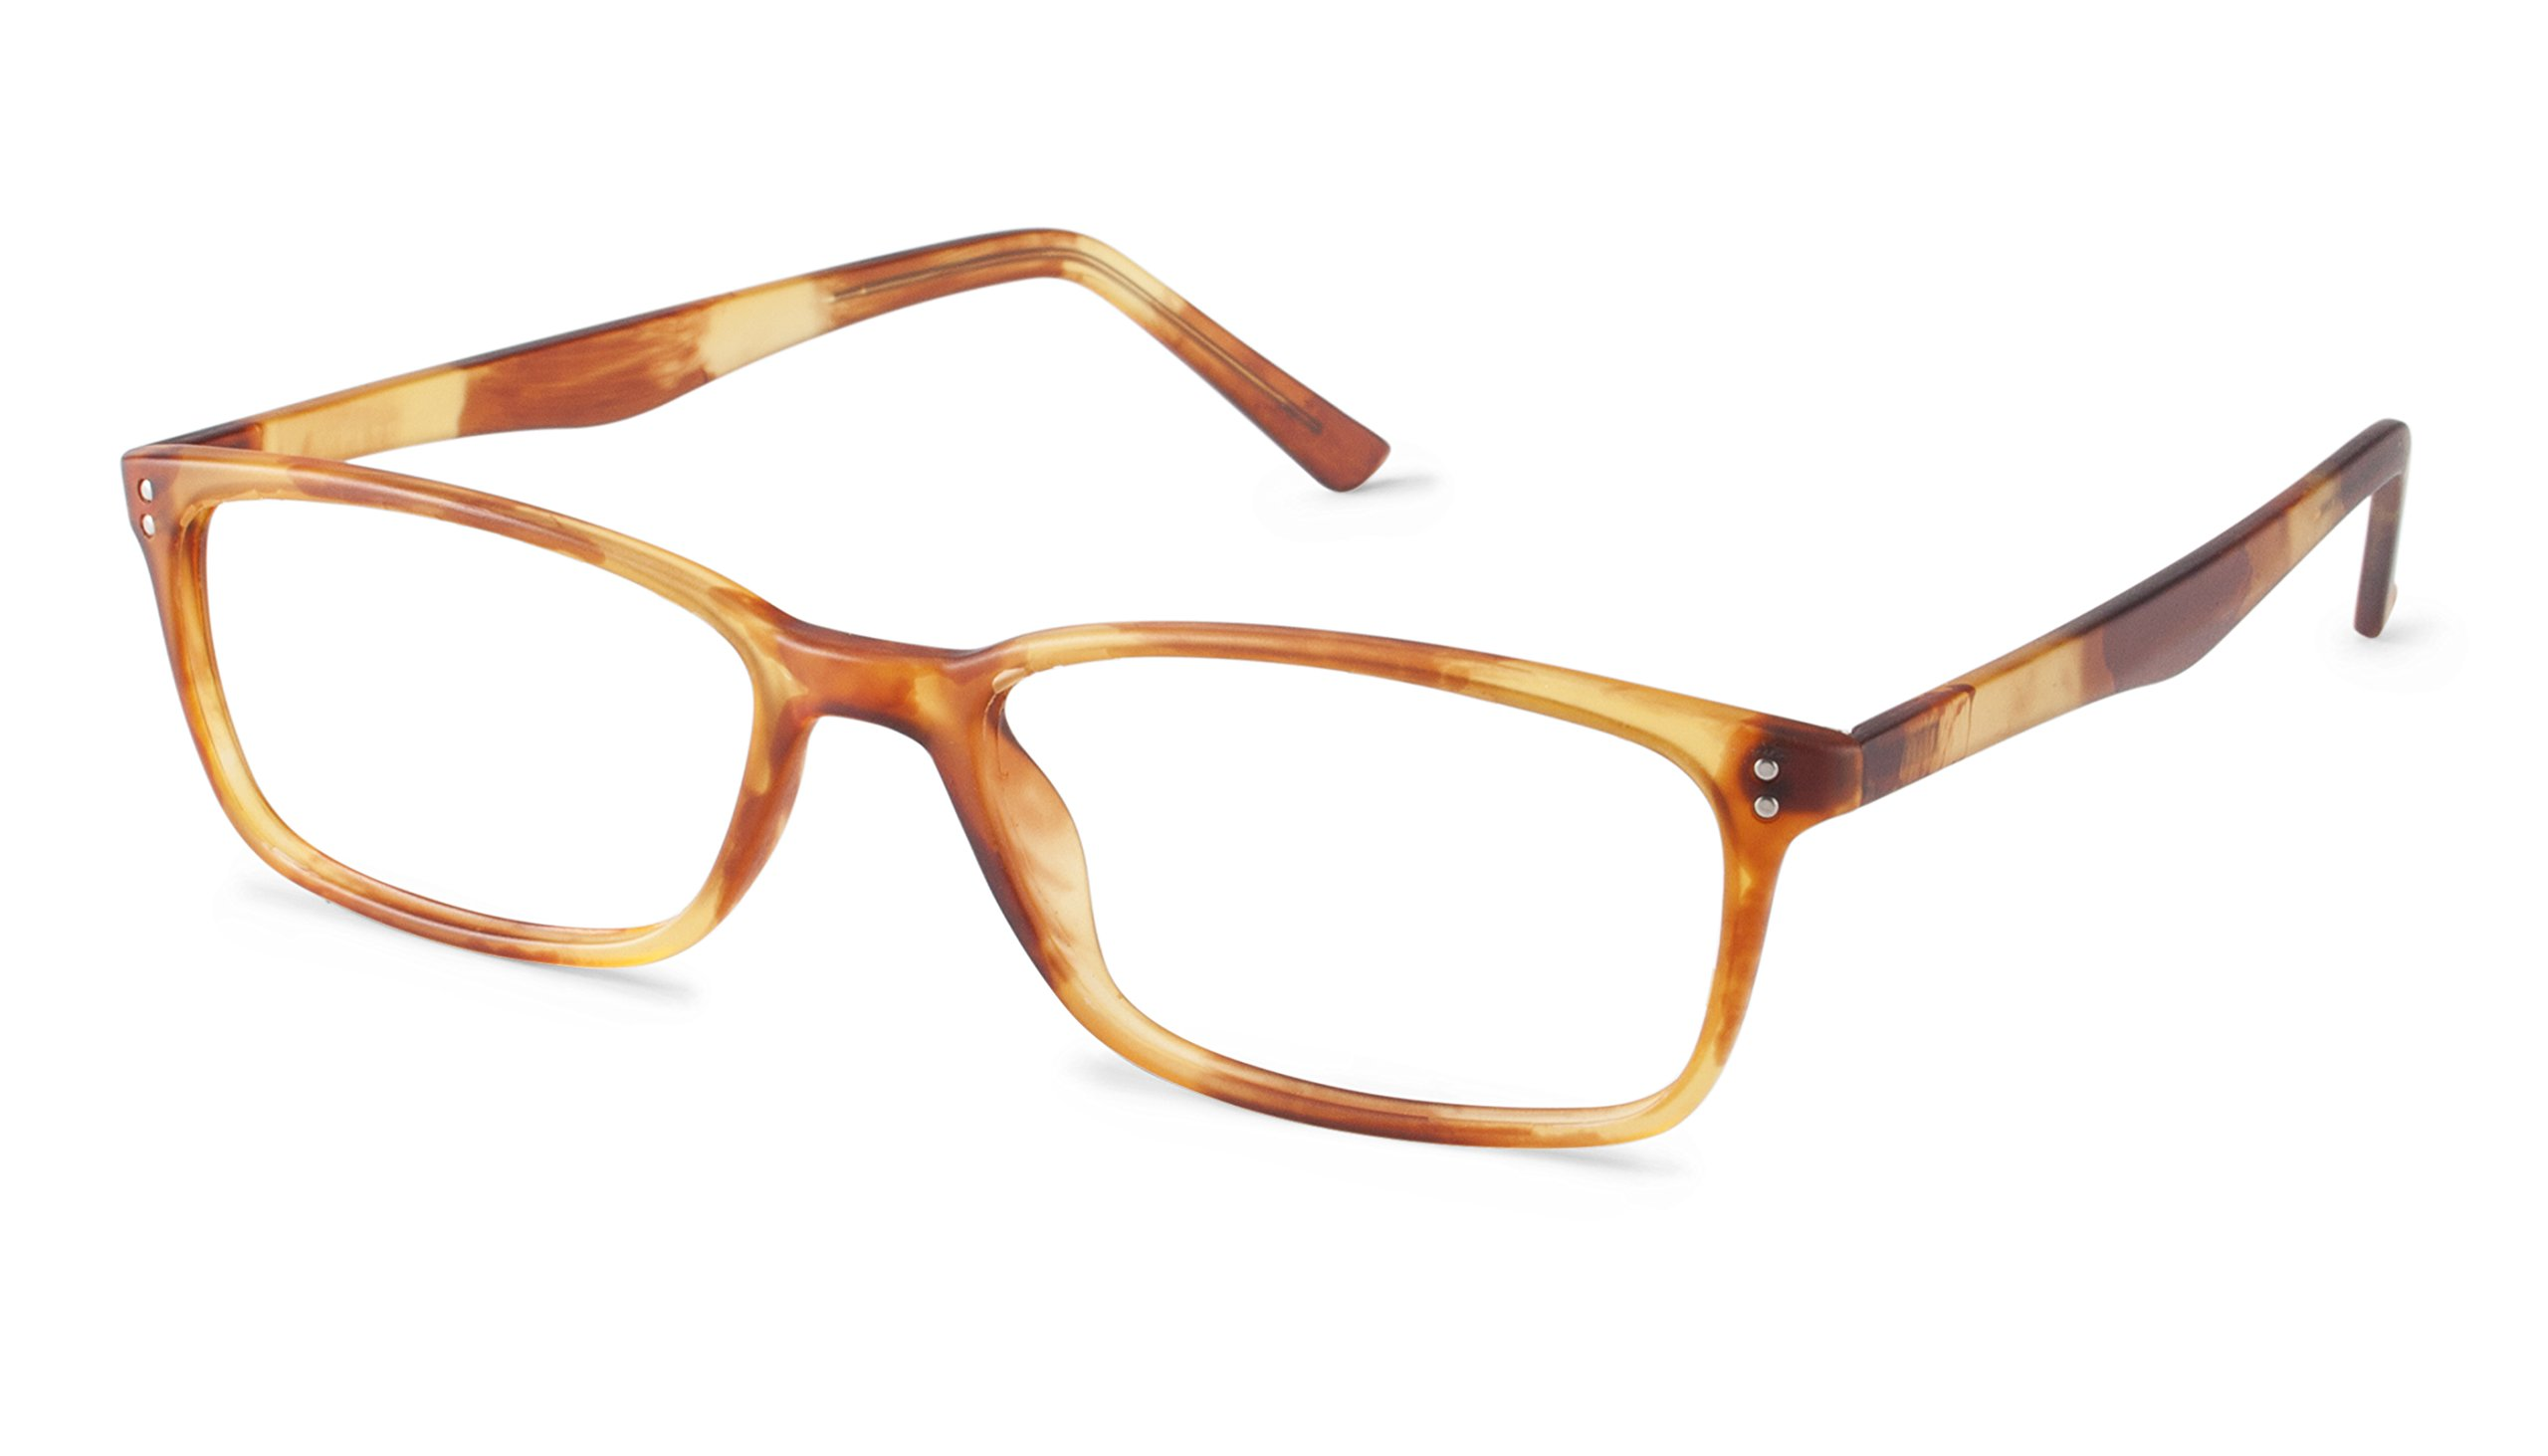 55ae35d7ea Amazon.com  Gels Lightweight Fashion Readers - The Original Reading Glasses  for Men and Women - Manhattan Frame